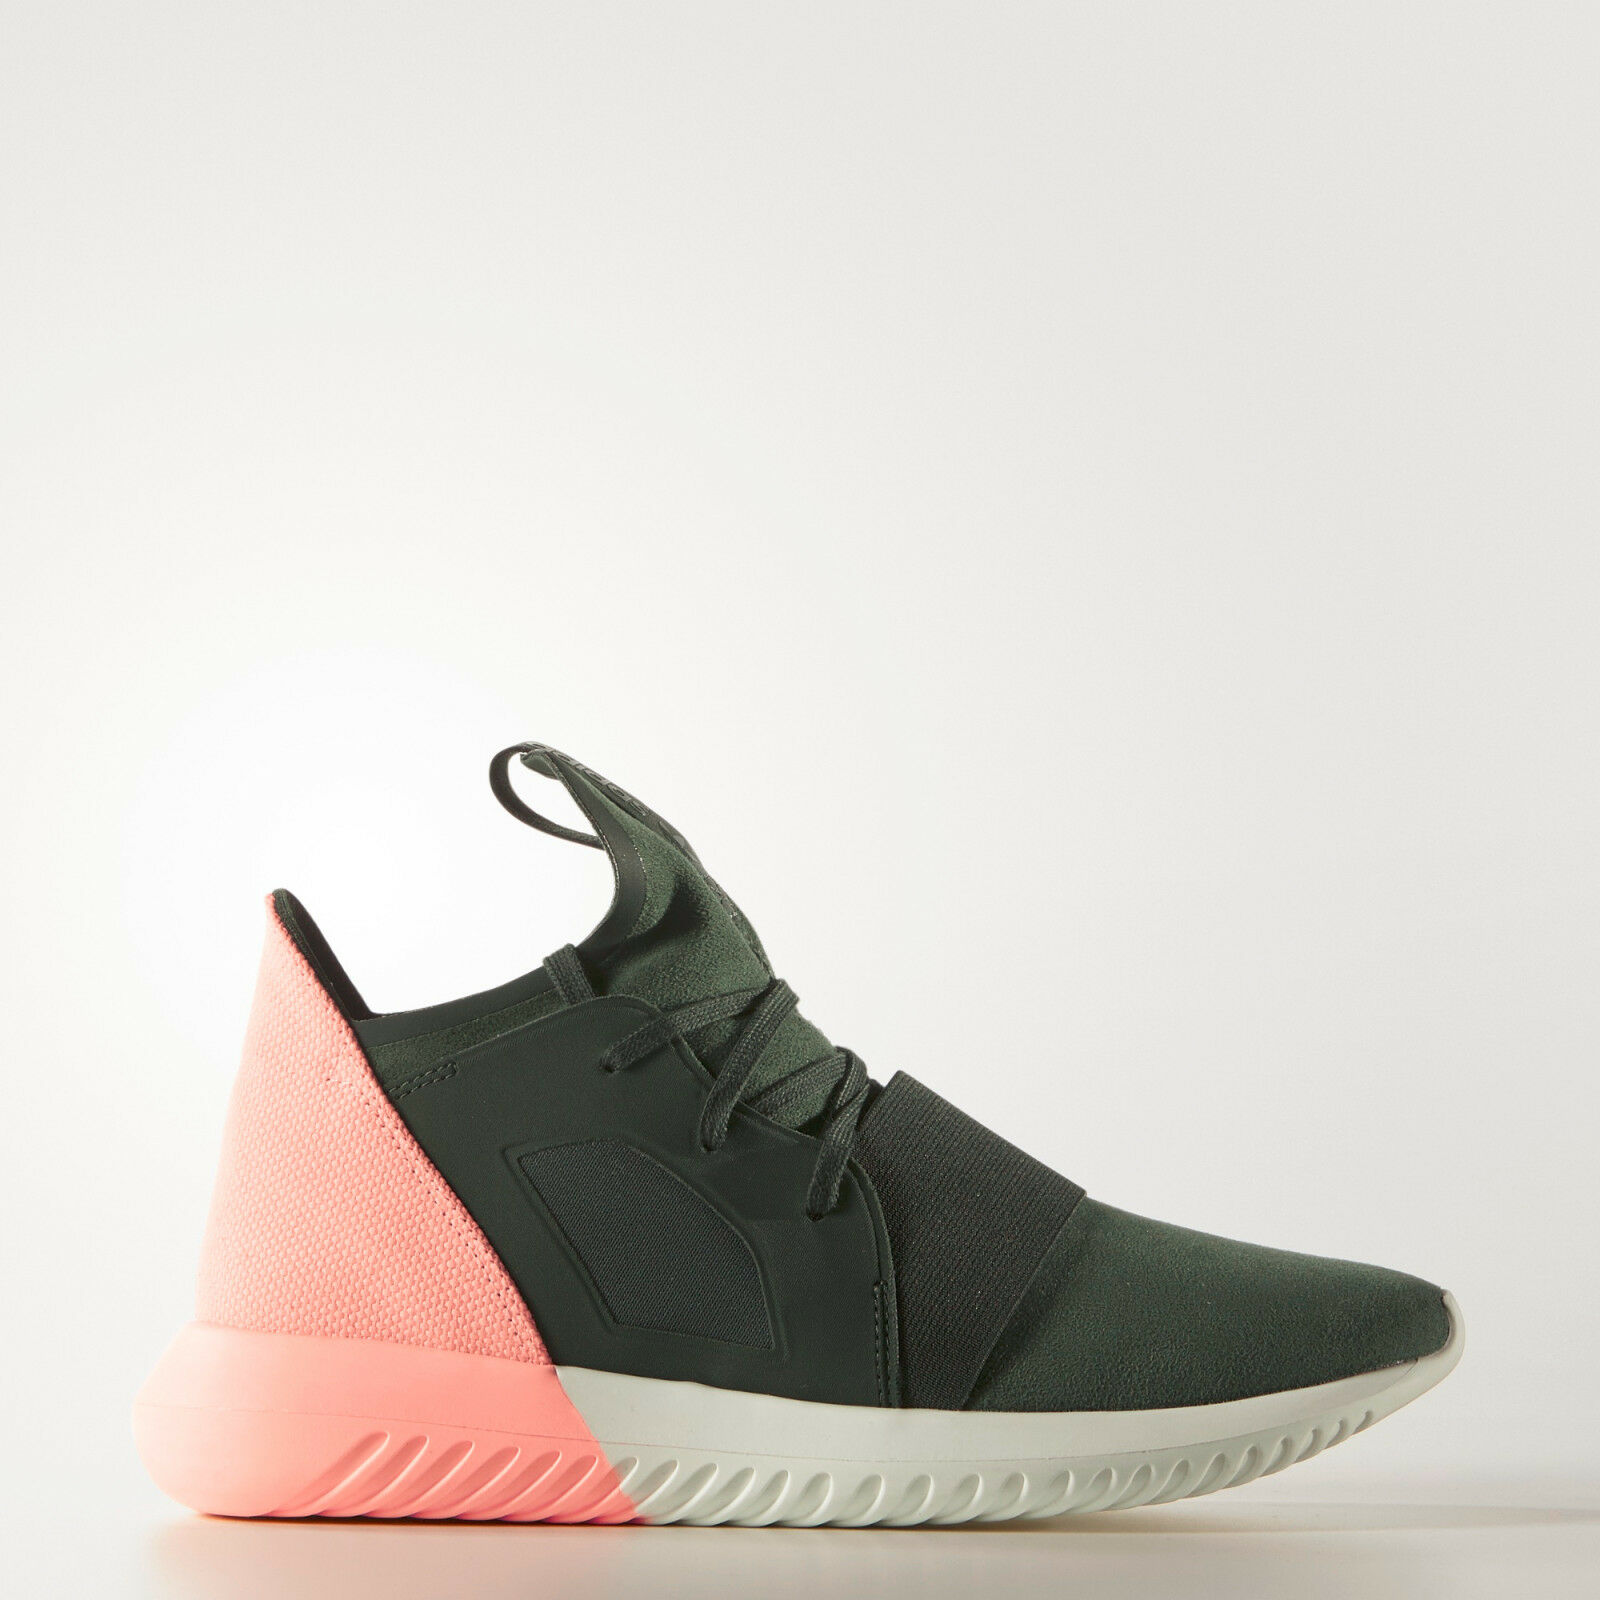 Adidas Tubular Defiant W Größes 4 to 10 S75248 Shadow Green Coral Pink S75248 10 24ede8